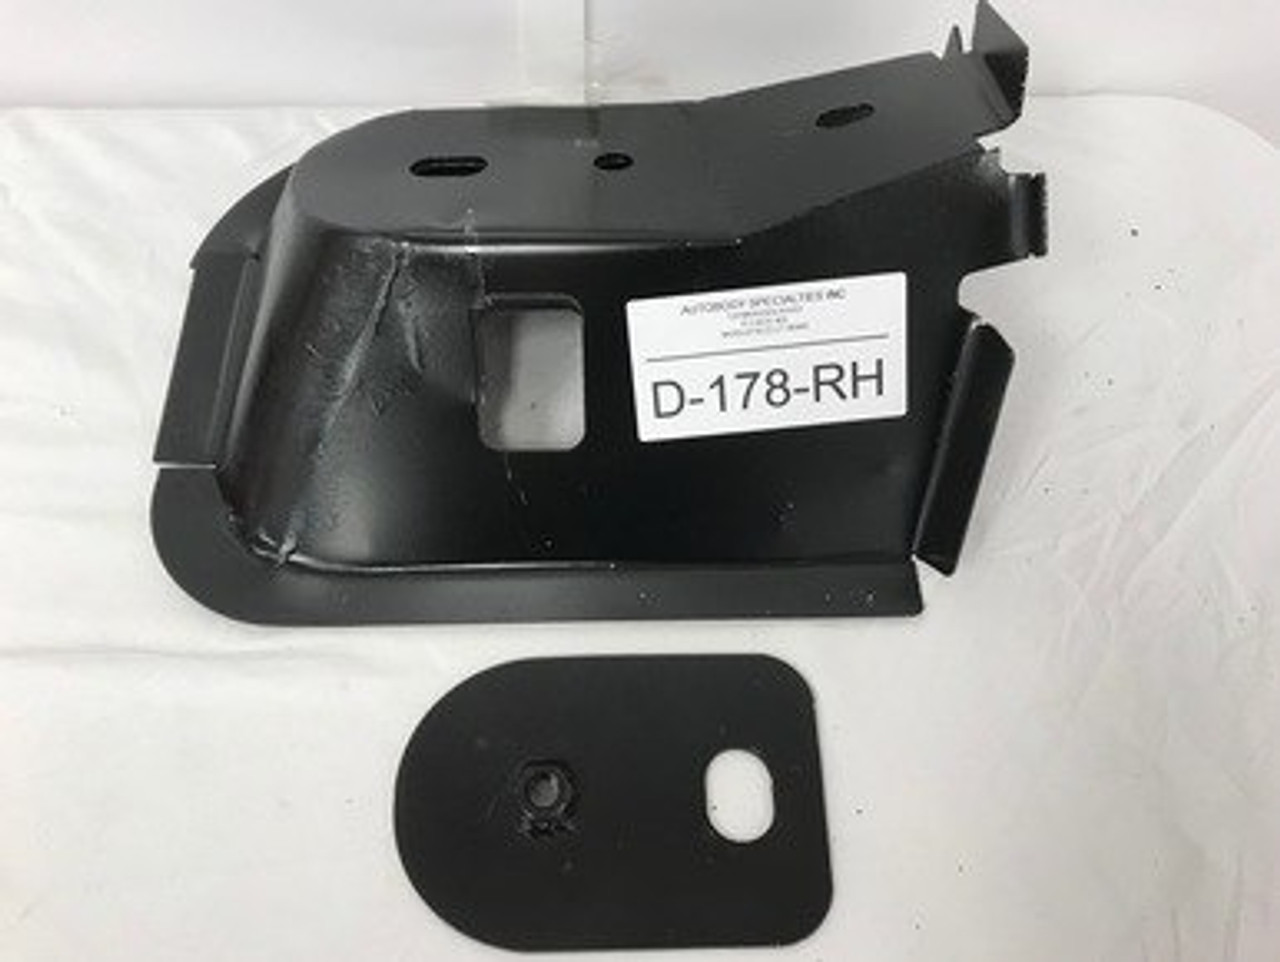 Diften 110-A0994-X01 New Fender Front Driver Left Side Primered LH Hand NI1240156 F31018B730